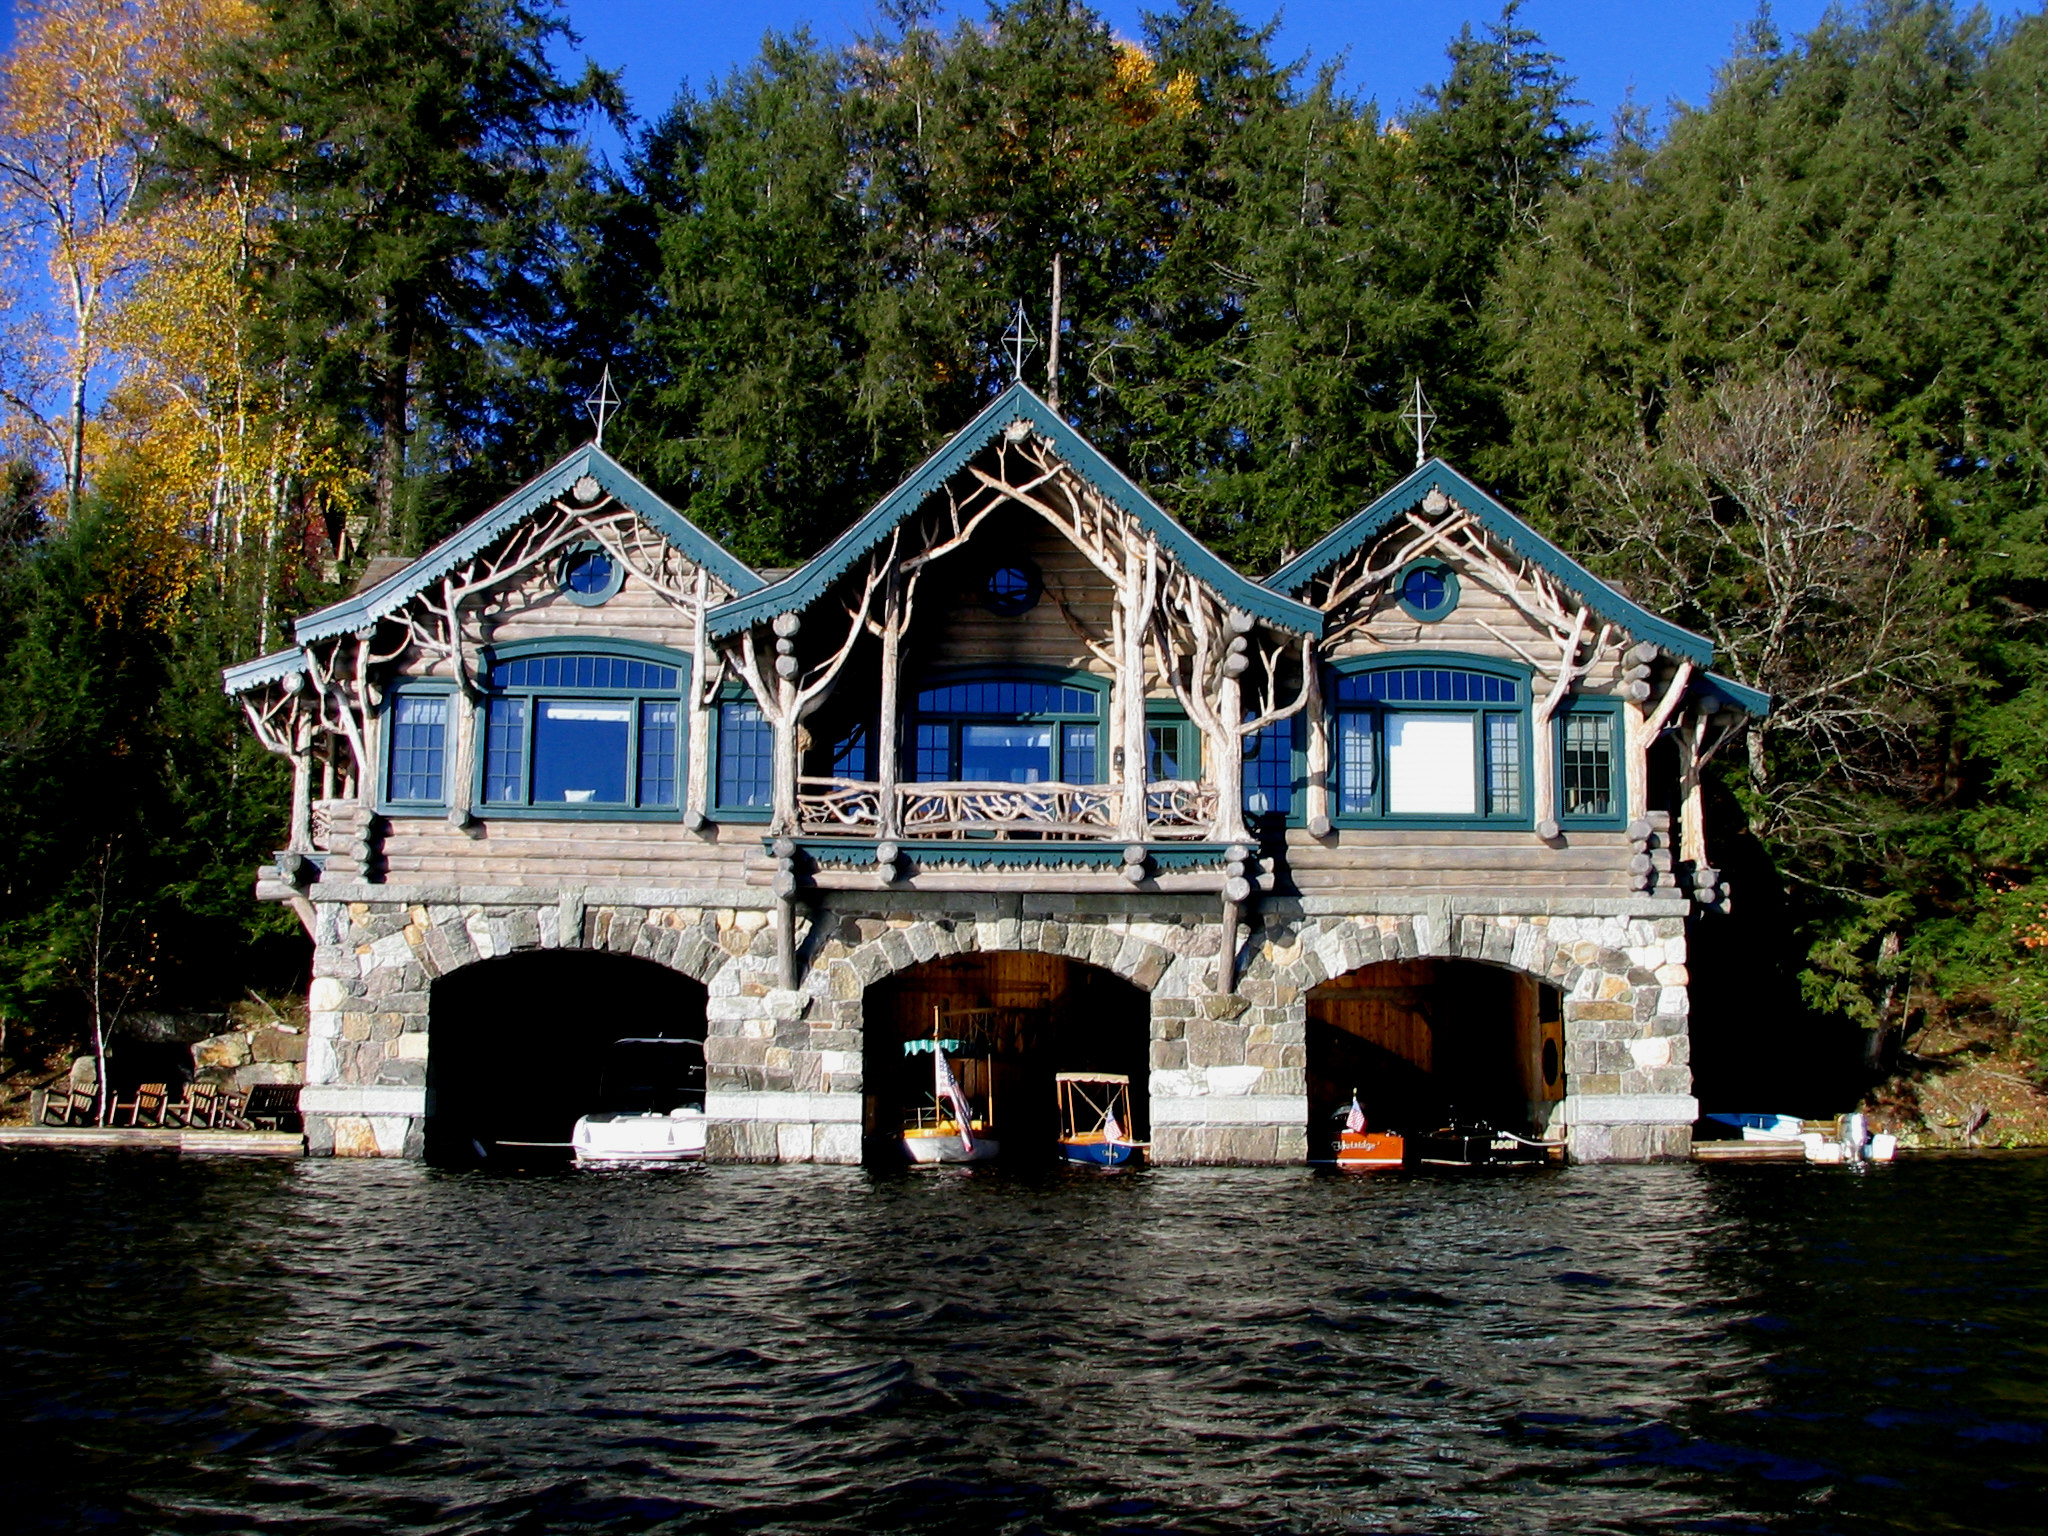 Boat house photo